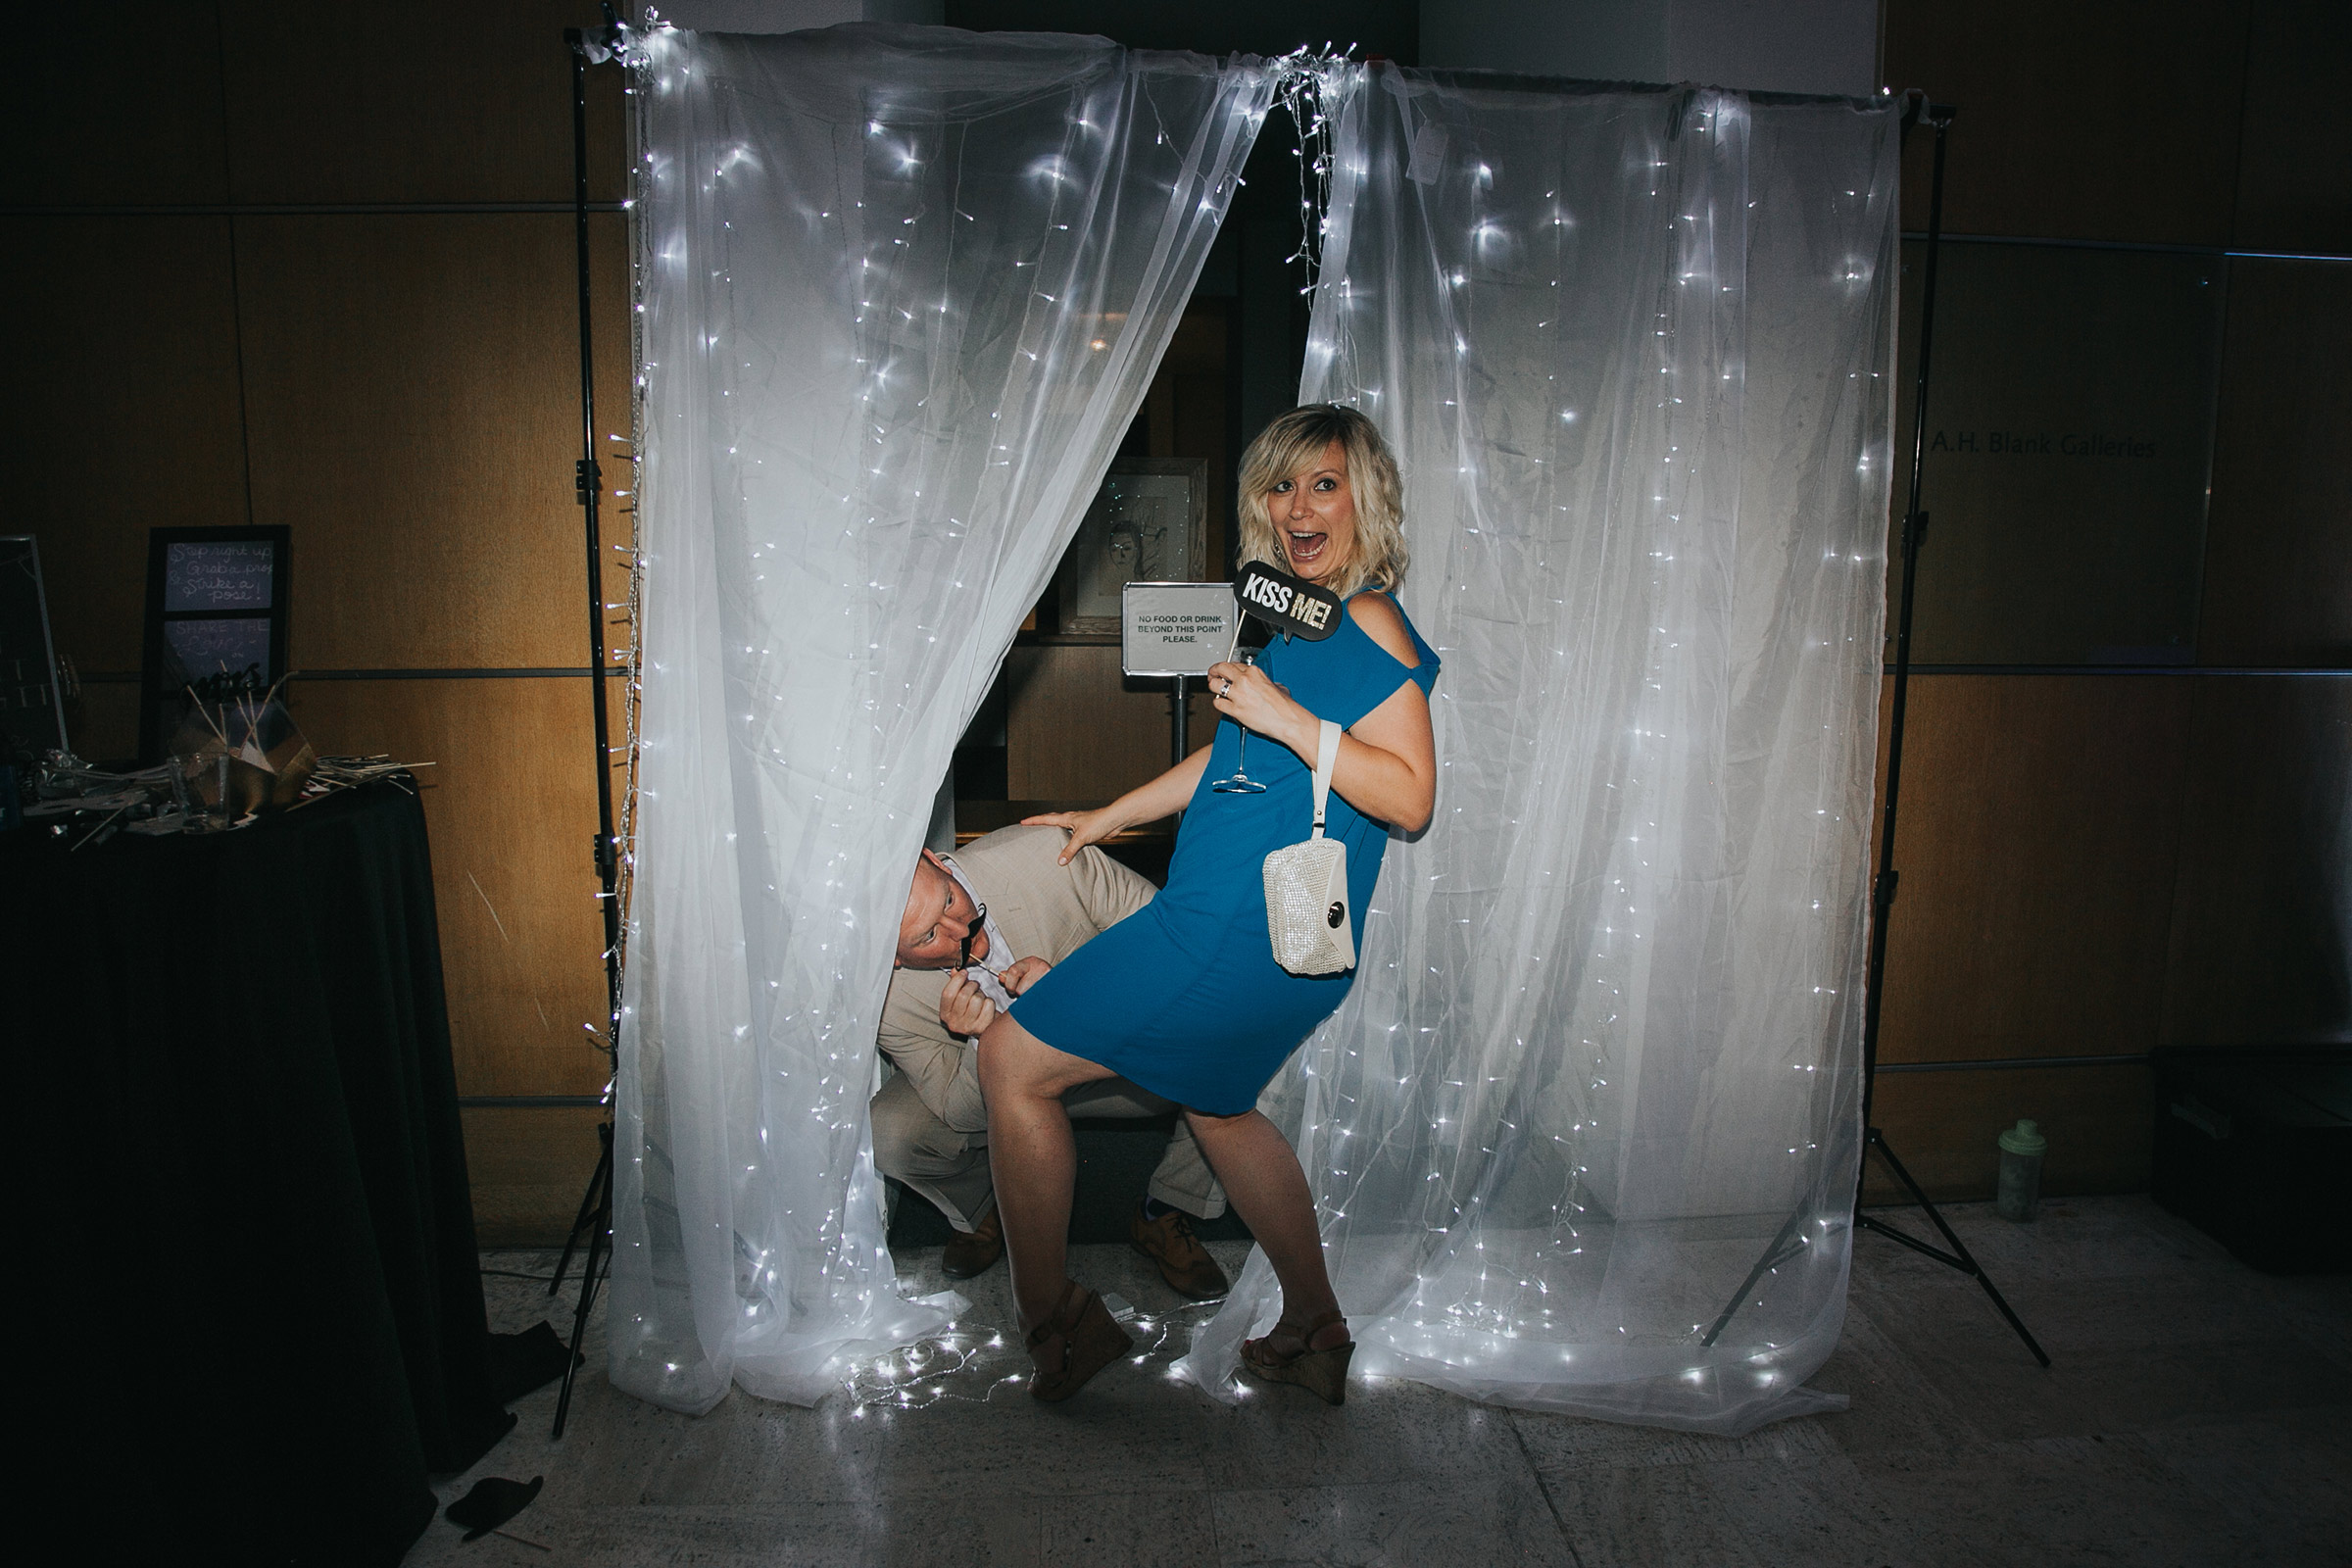 guest-in-photobooth-being-funny-with-signs-desmoines-iowa-art-center-raelyn-ramey-photography.jpg